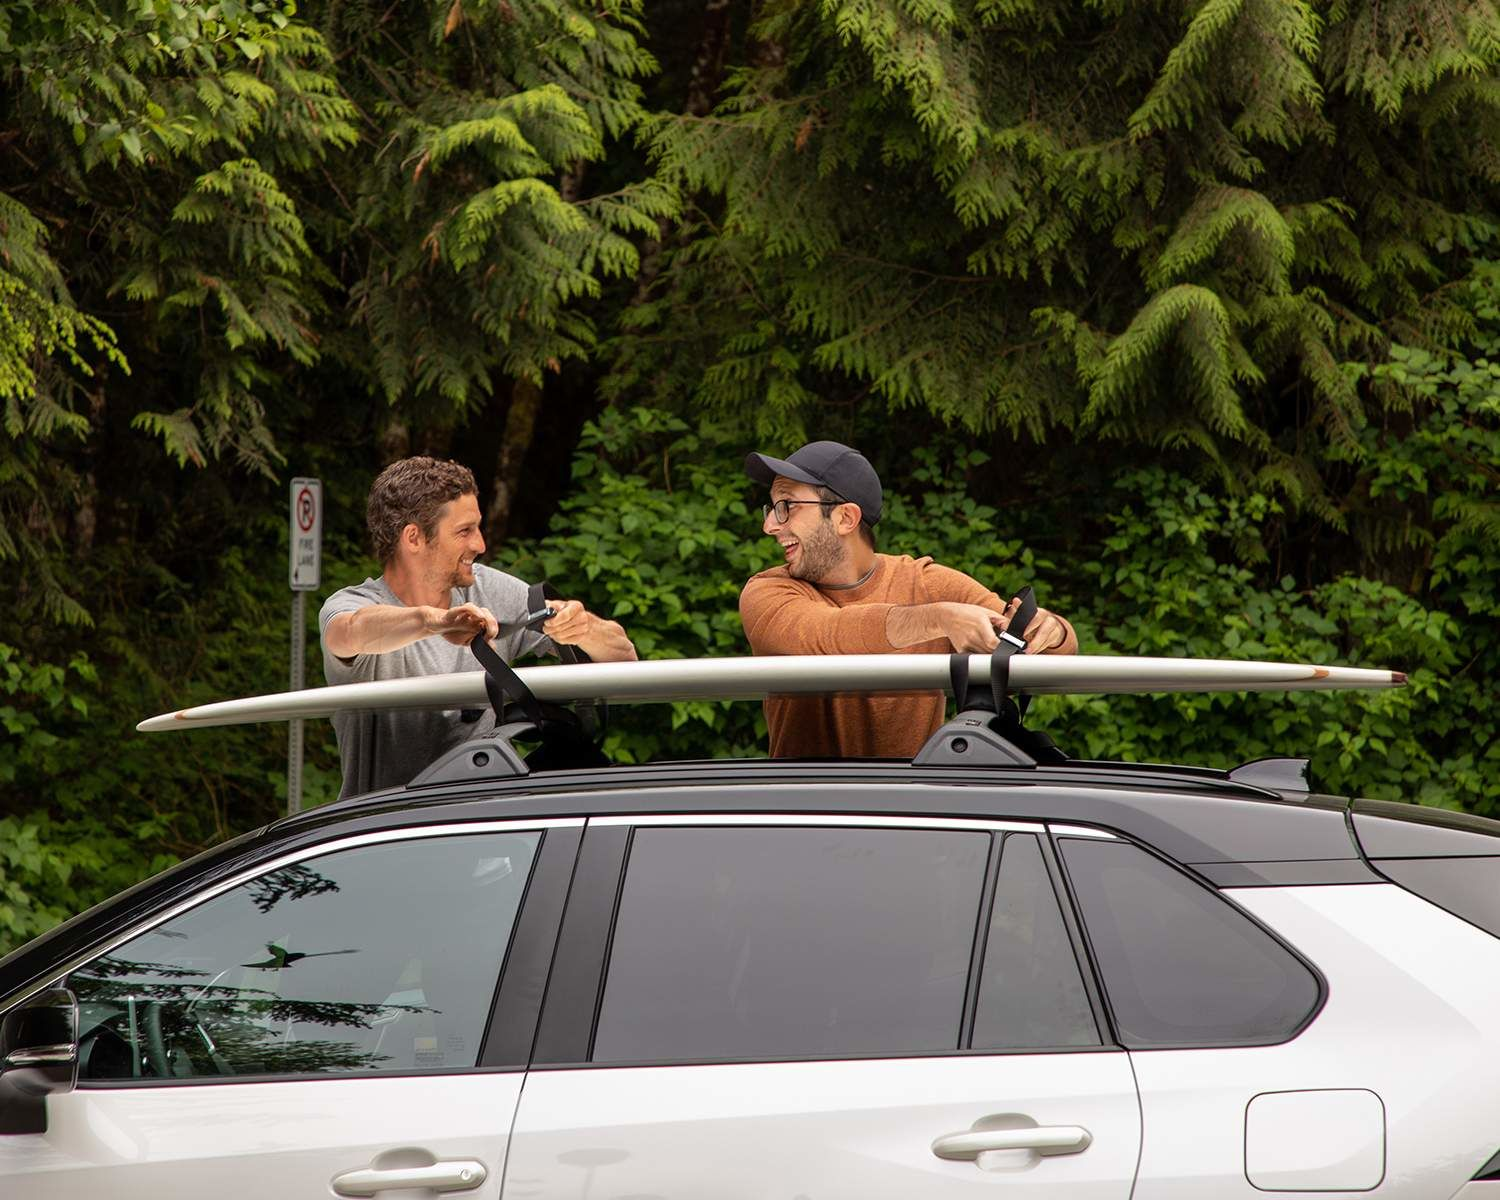 Pete Devries and Michael getting ready to surf to Tofino, BC